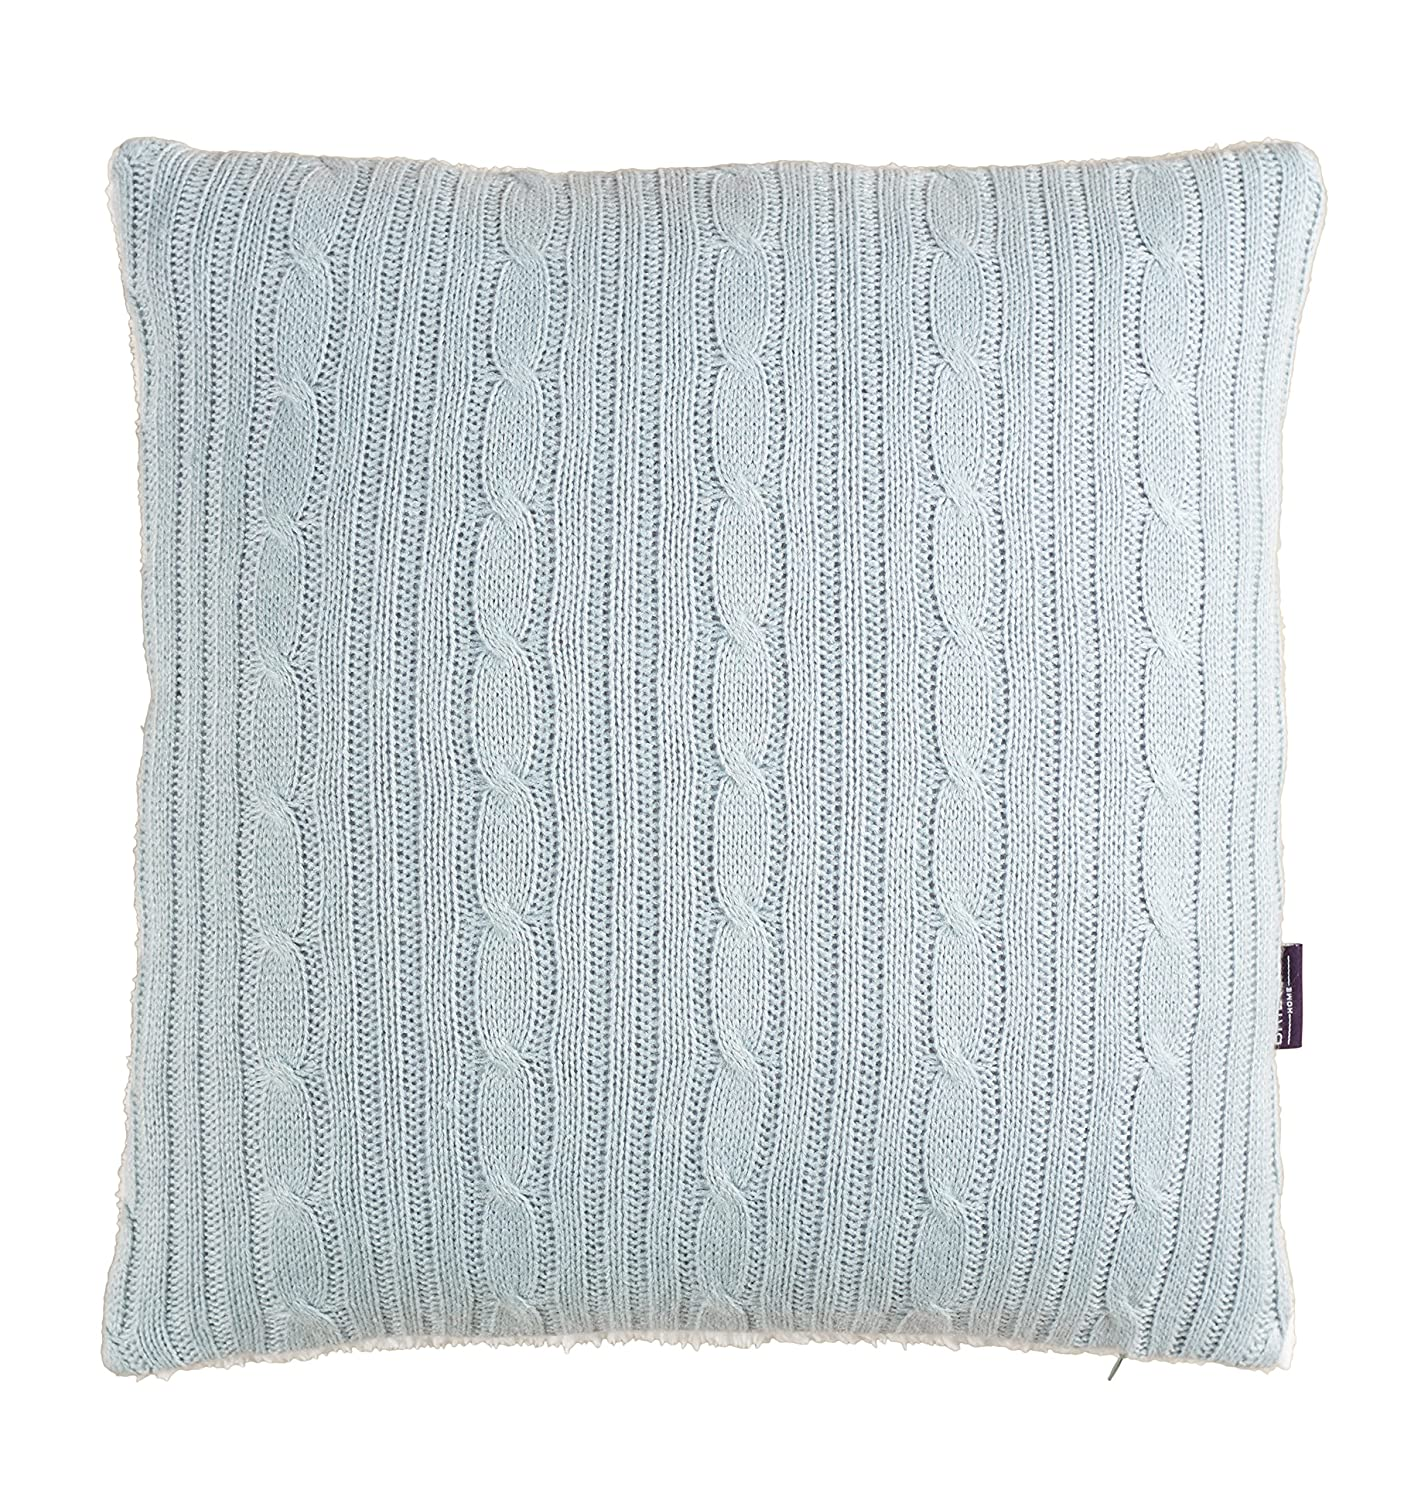 Brielle Cozy Cable Knit Throw with Sherpa Lining, Grey 807000160174